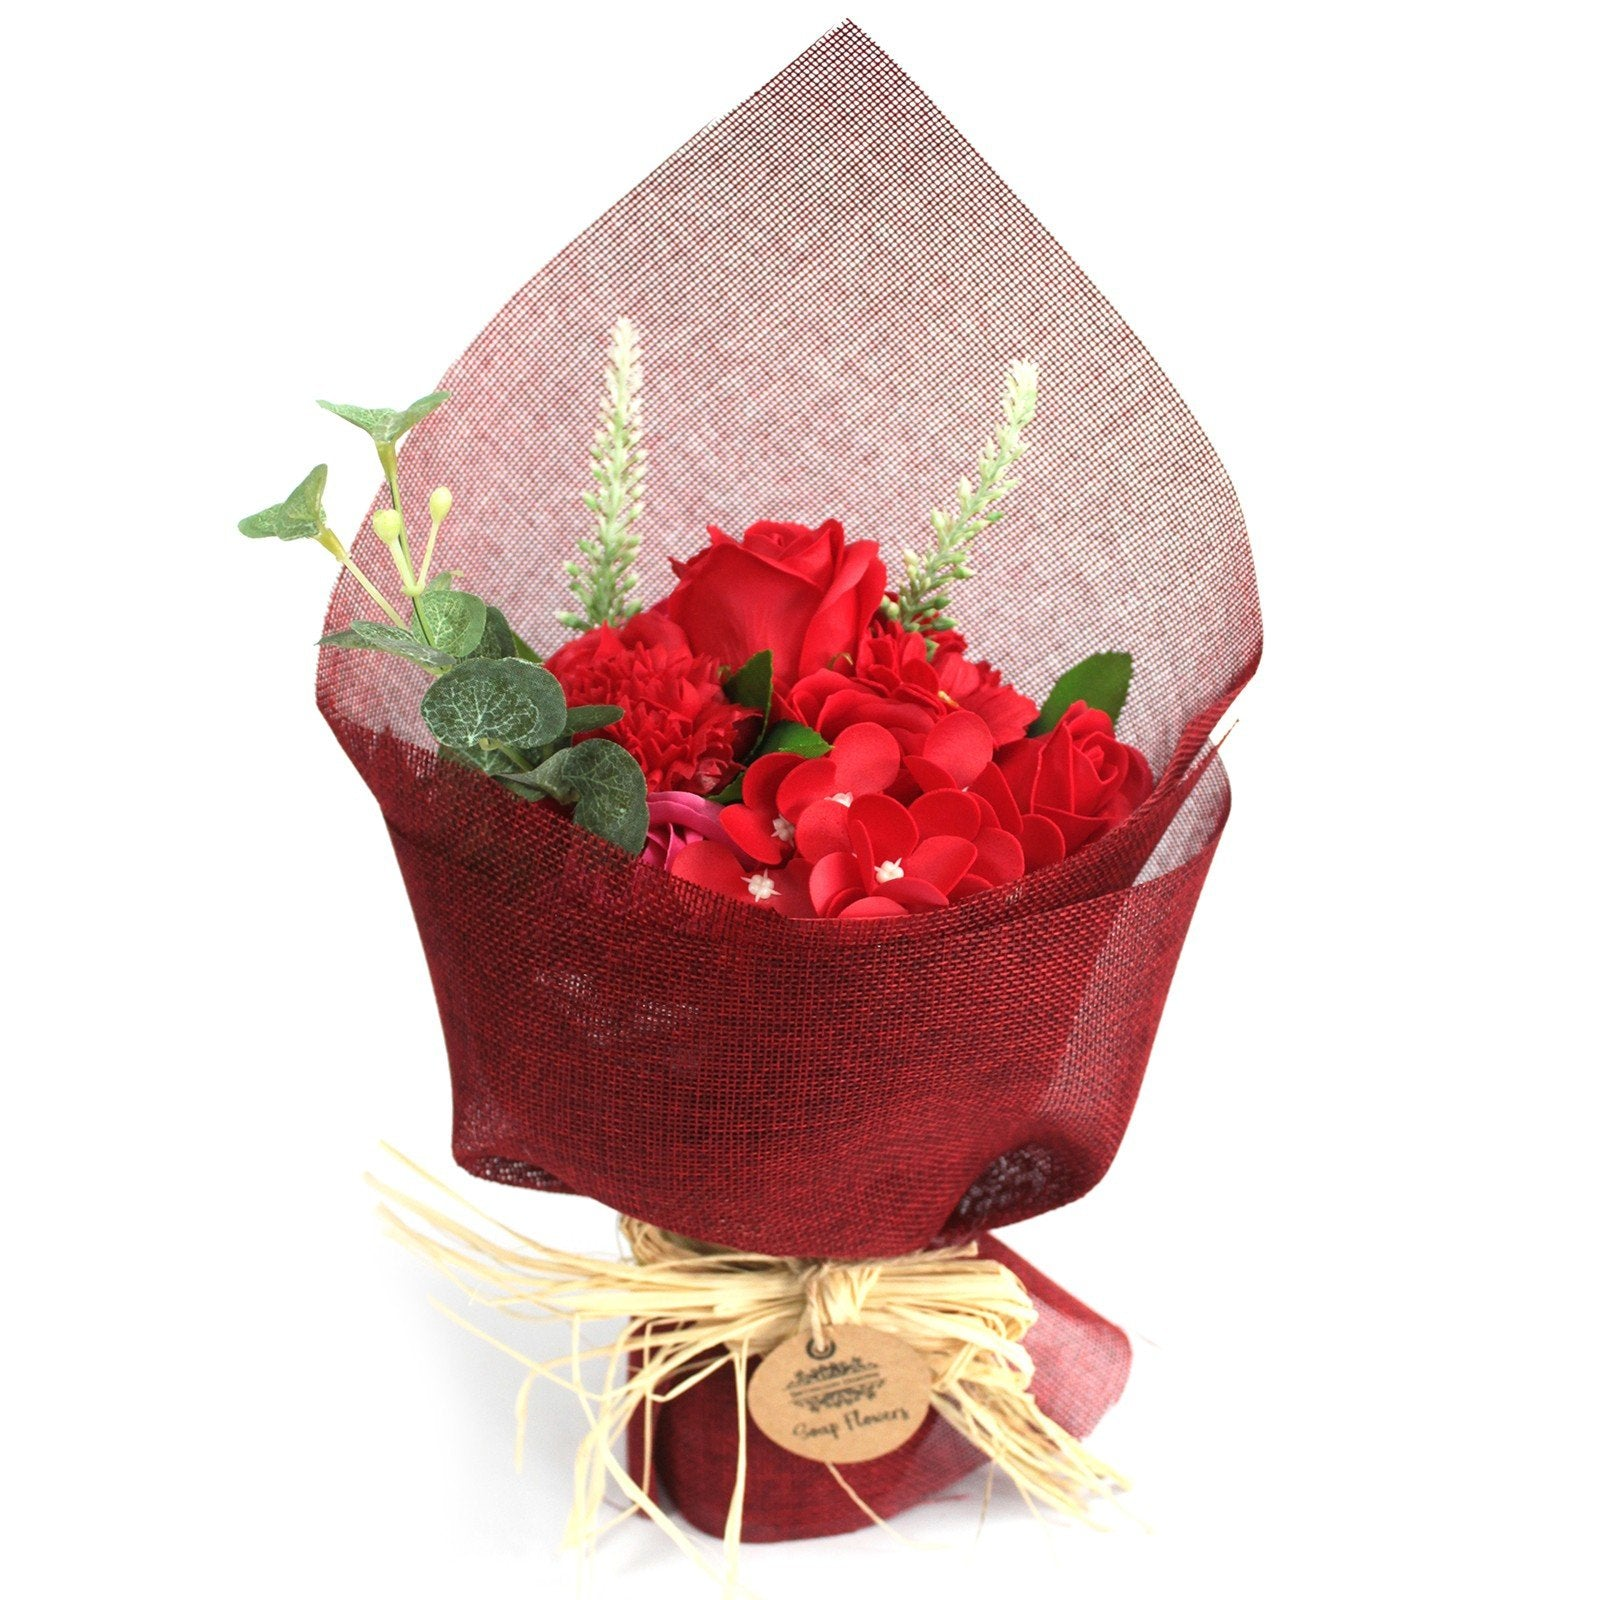 Standing Soap Flower Bouquet - Red - Gift2U.co.uk - Unique gifts online to You